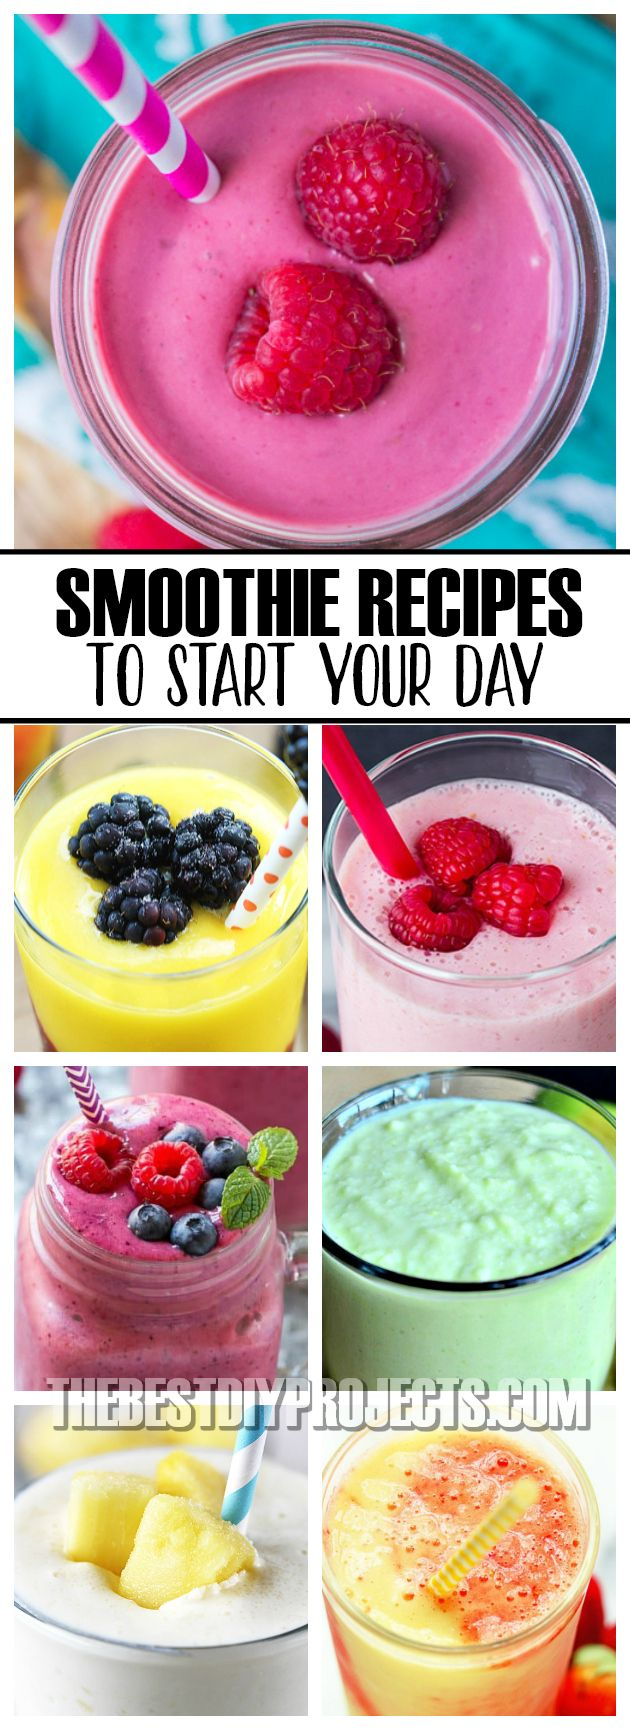 These Smoothie Recipes to Start Your Day have a delicious blend of fruits and greens that come together perfectly and make a breakfast drink that your family will love!